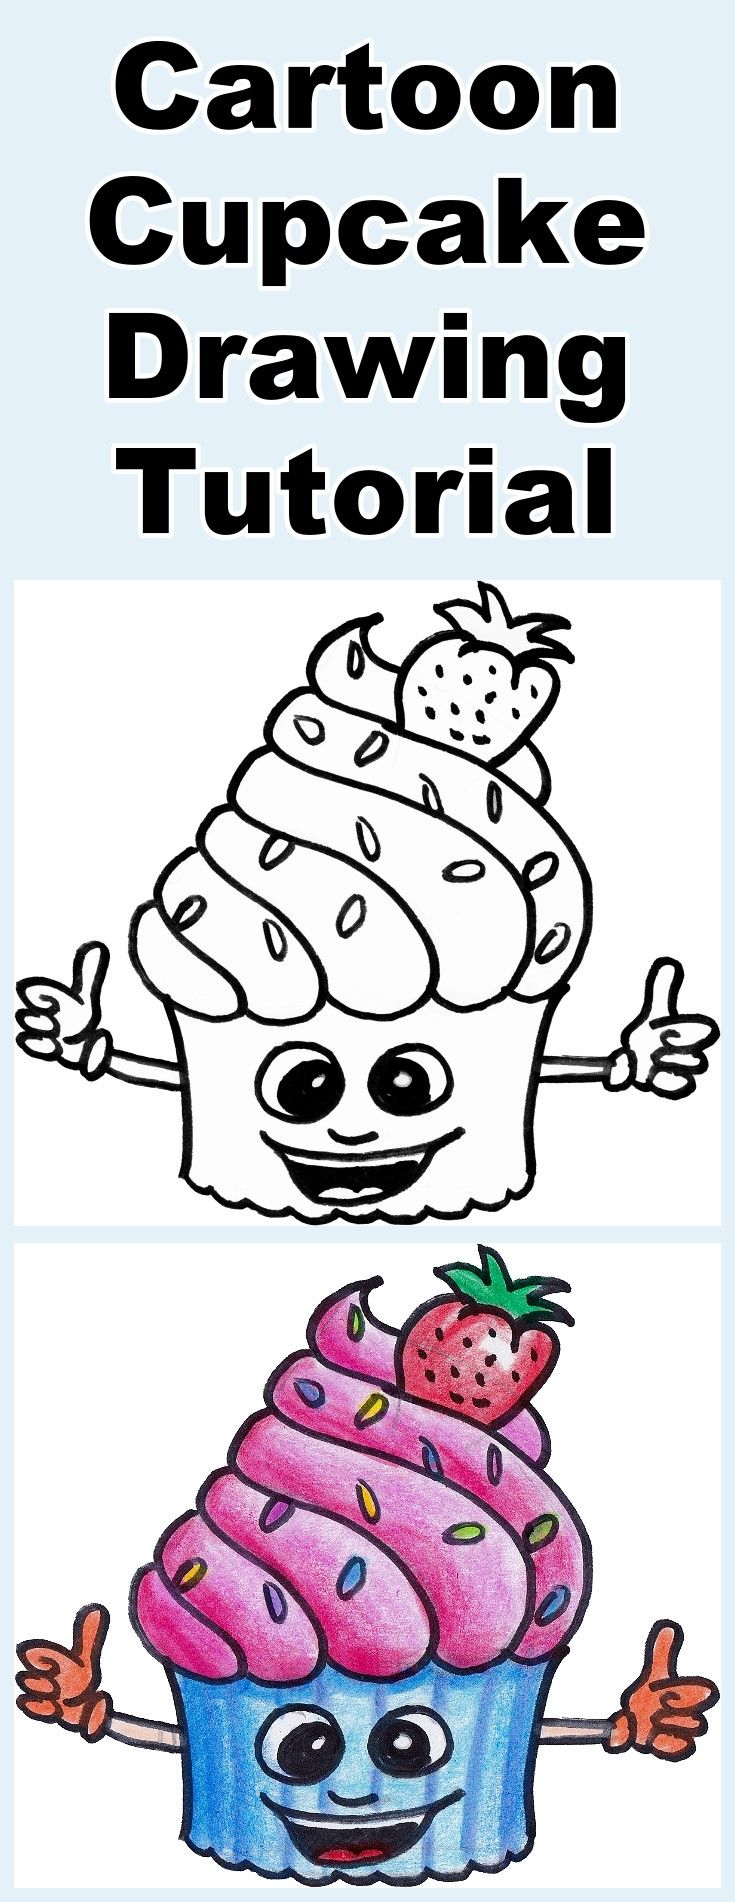 Follow the video as you learn how to draw and then color this cute cartoon cupcake. Includes a free downloadable coloring page.